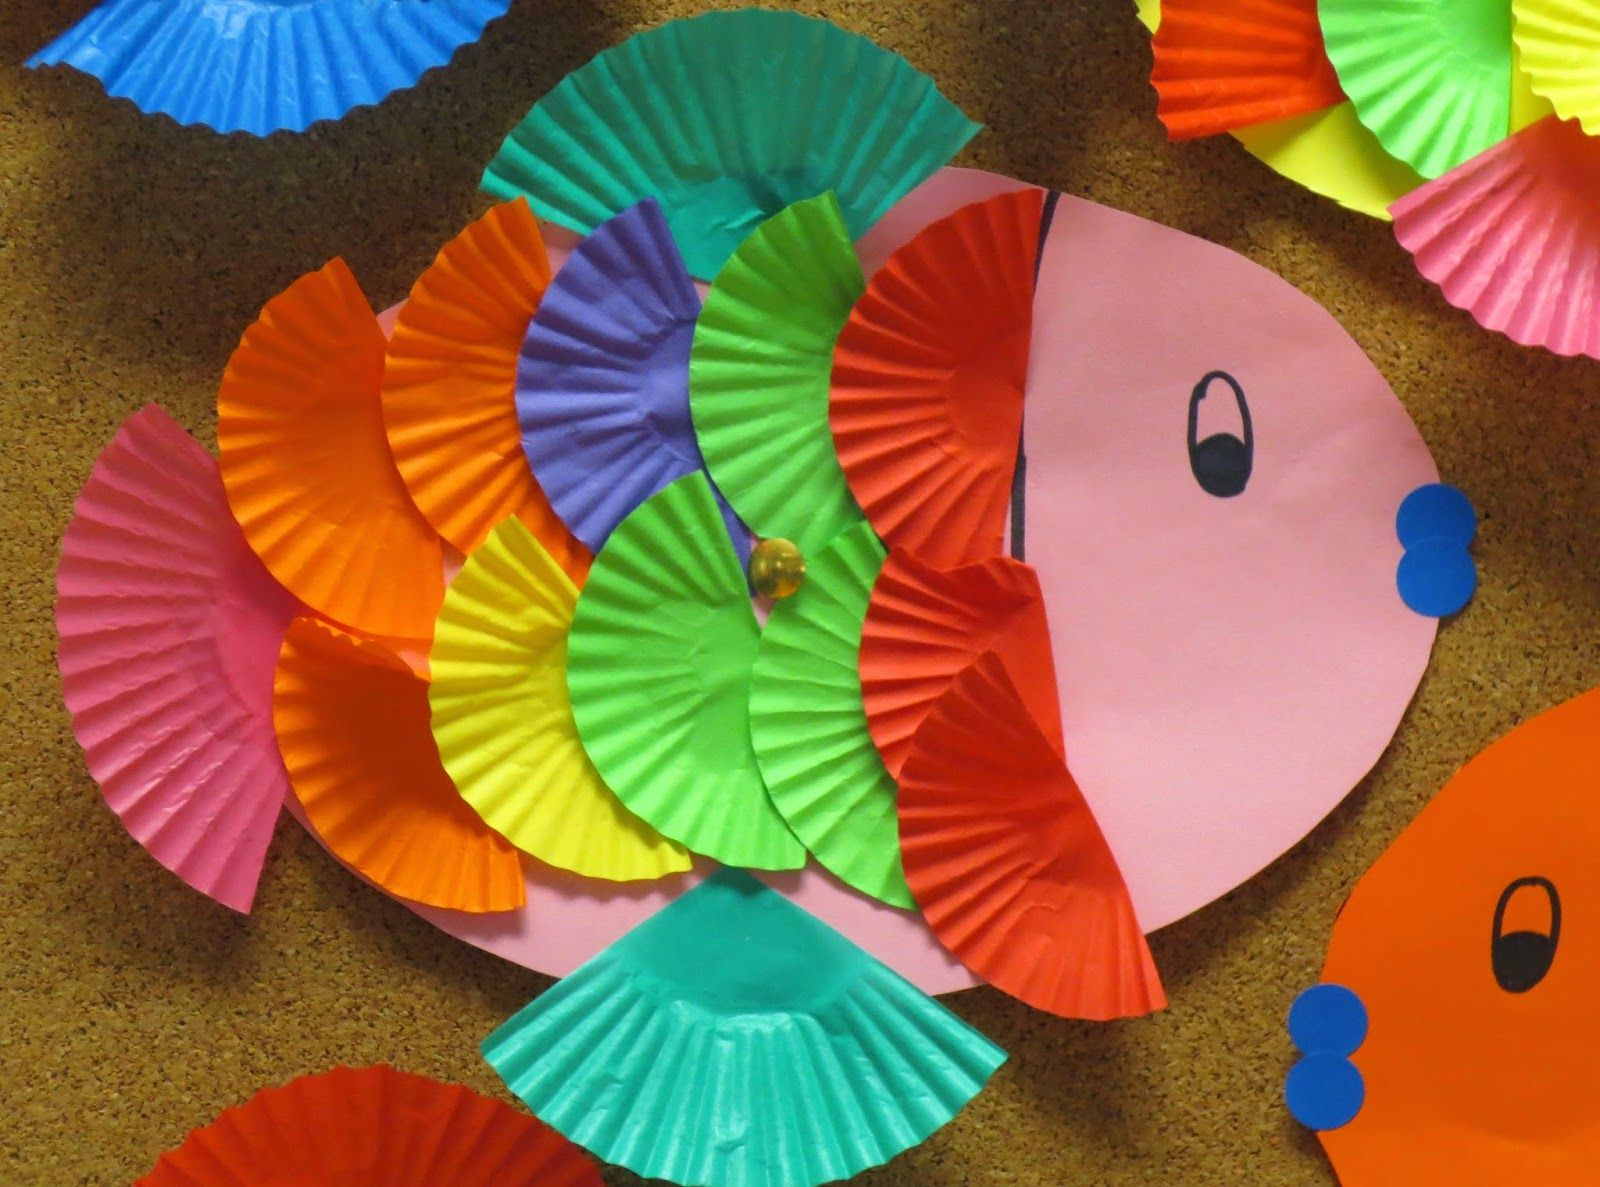 Letter s arts and crafts for preschoolers - Love Laughter And Learning In Prep Five For Friday Crafty Business